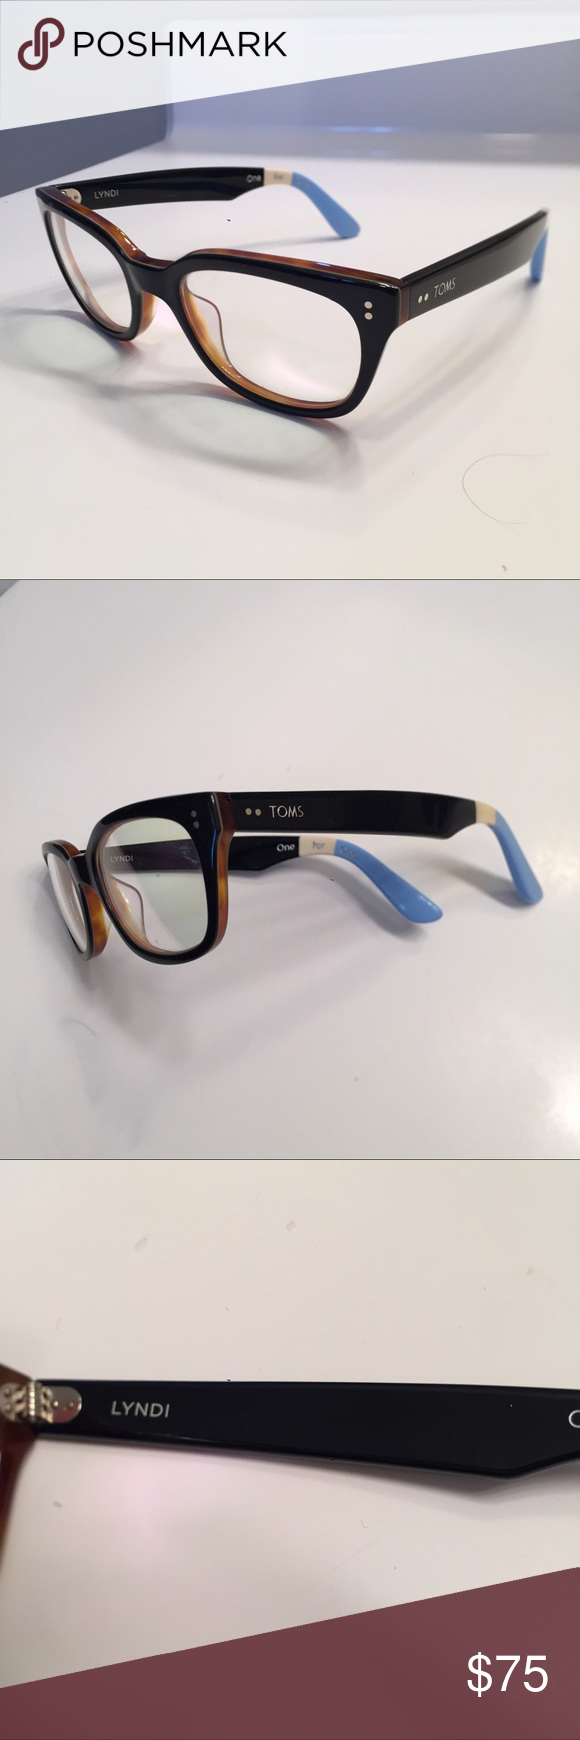 Toms Lyndi fashion glasses | Toms, Accessories and Glasses